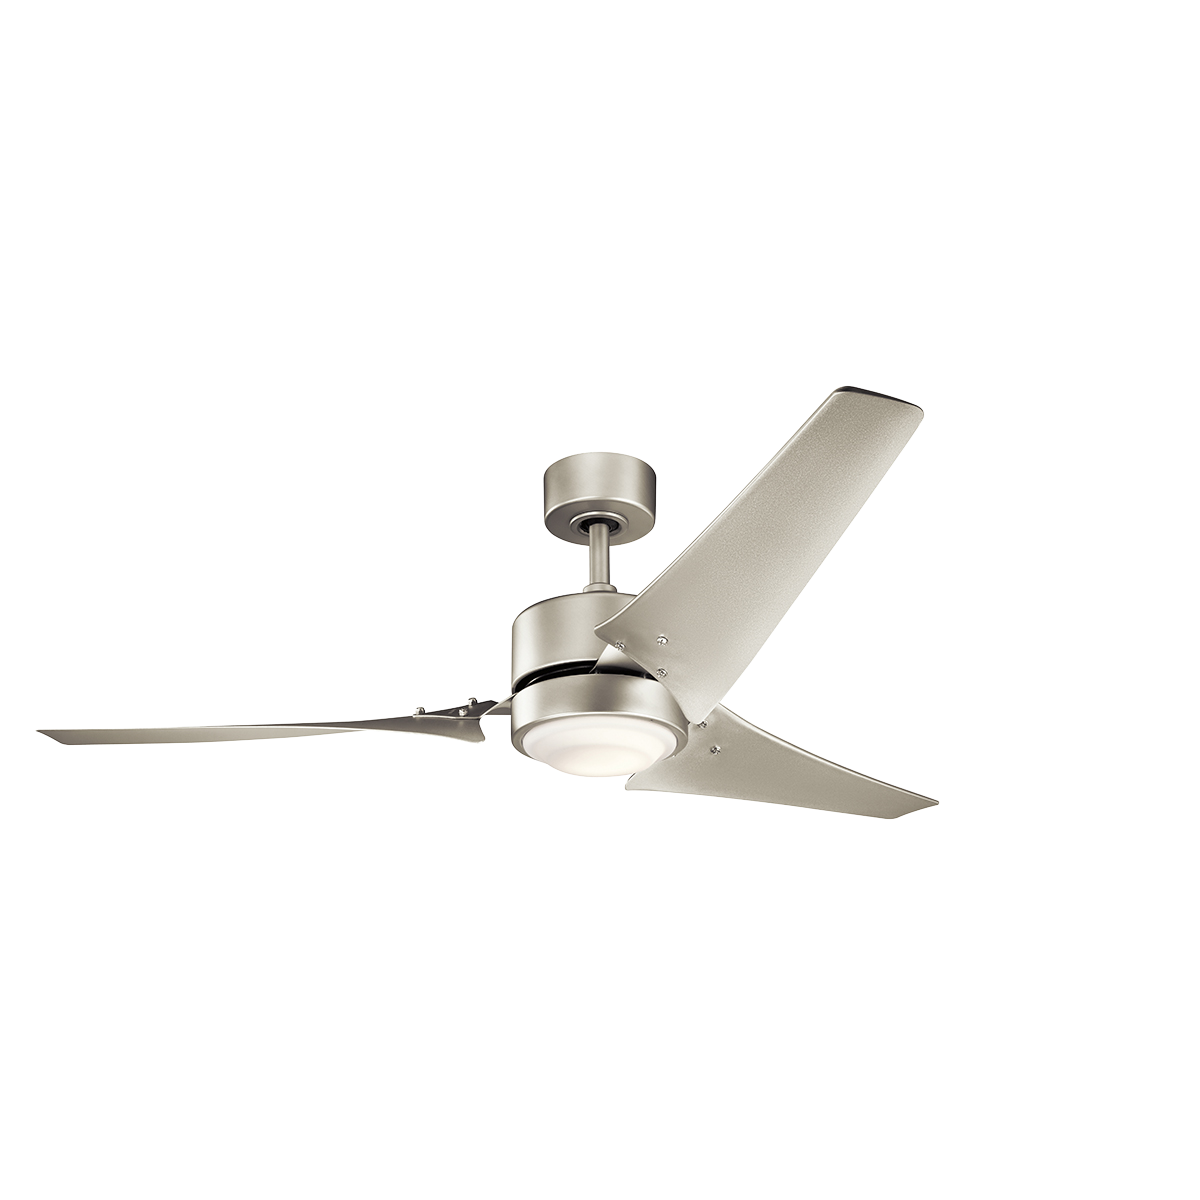 Bathroom Ceiling Exhaust Fan With Pull Chain